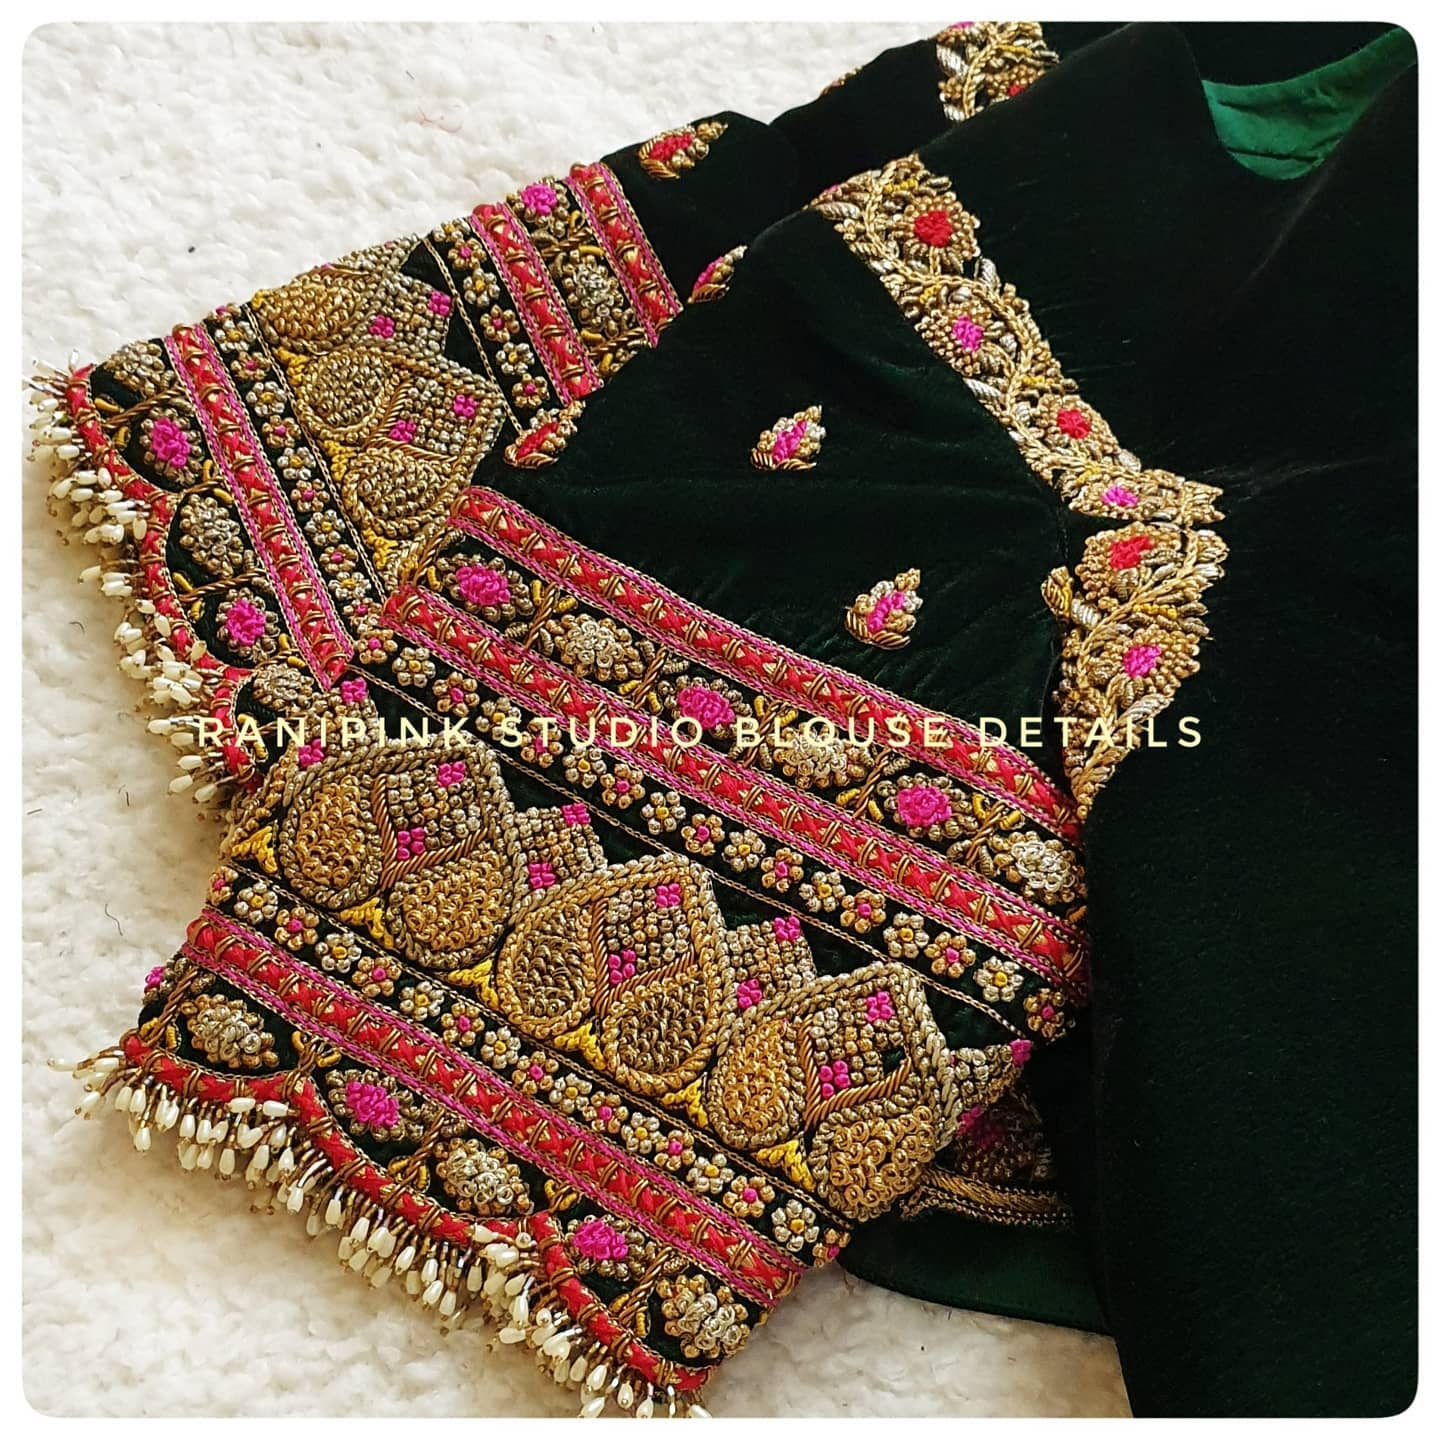 Details of a Velvet blouse by Rani pink studio. Gorgeous bottle green color velvet cloth with floral and creeper design hand embroidery bead and stone 3D maggam work.  2021-04-13